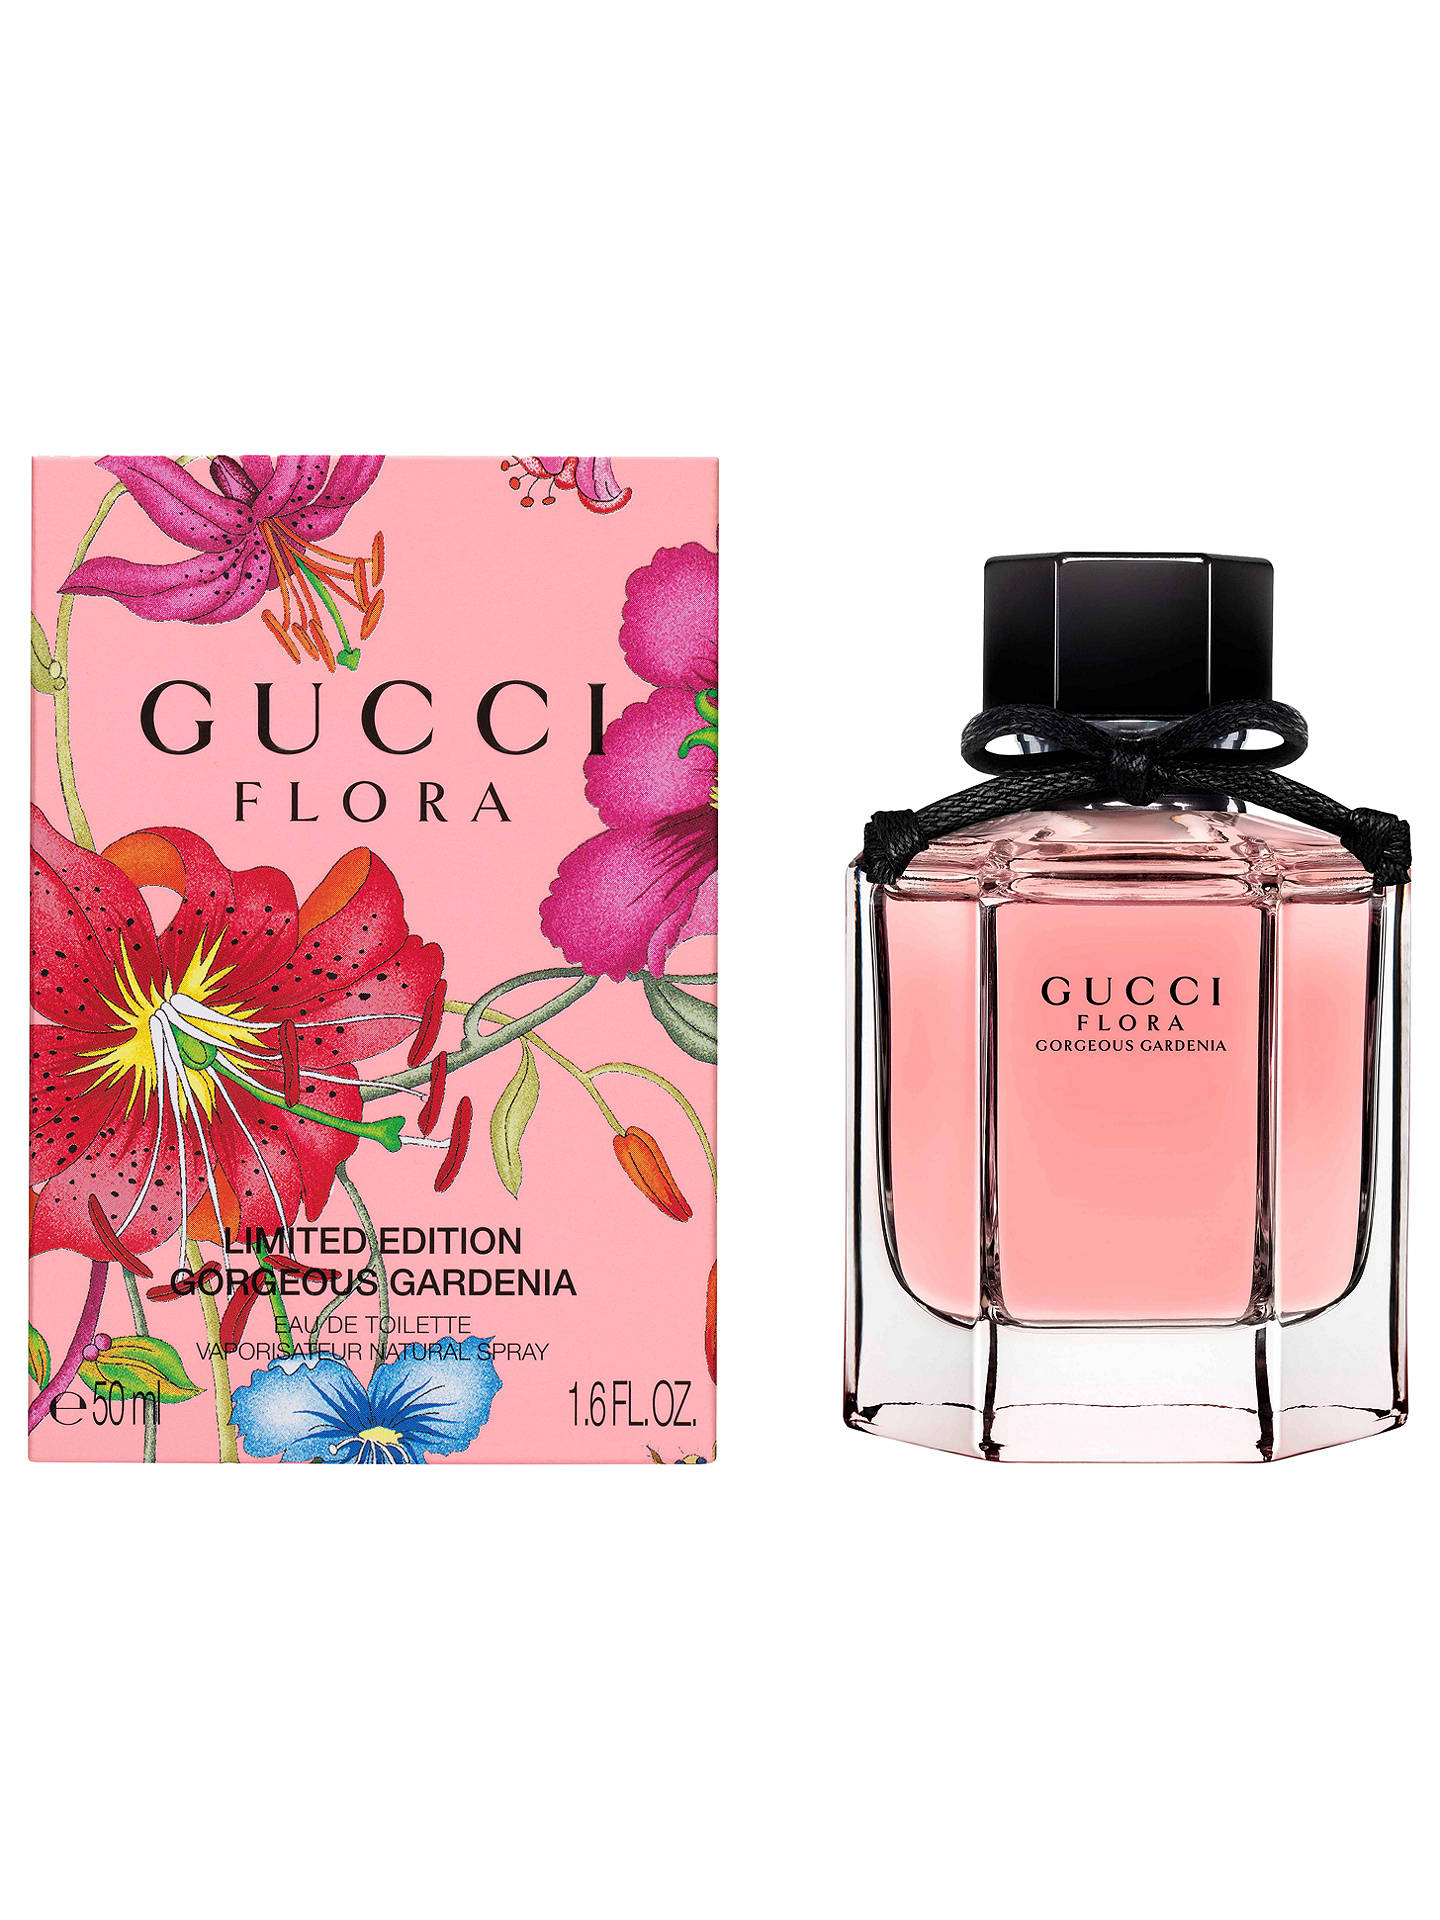 a7a6d476170 Buy Gucci Flora by Gucci Limited Edition Gorgeous Gardenia Eau de Toilette